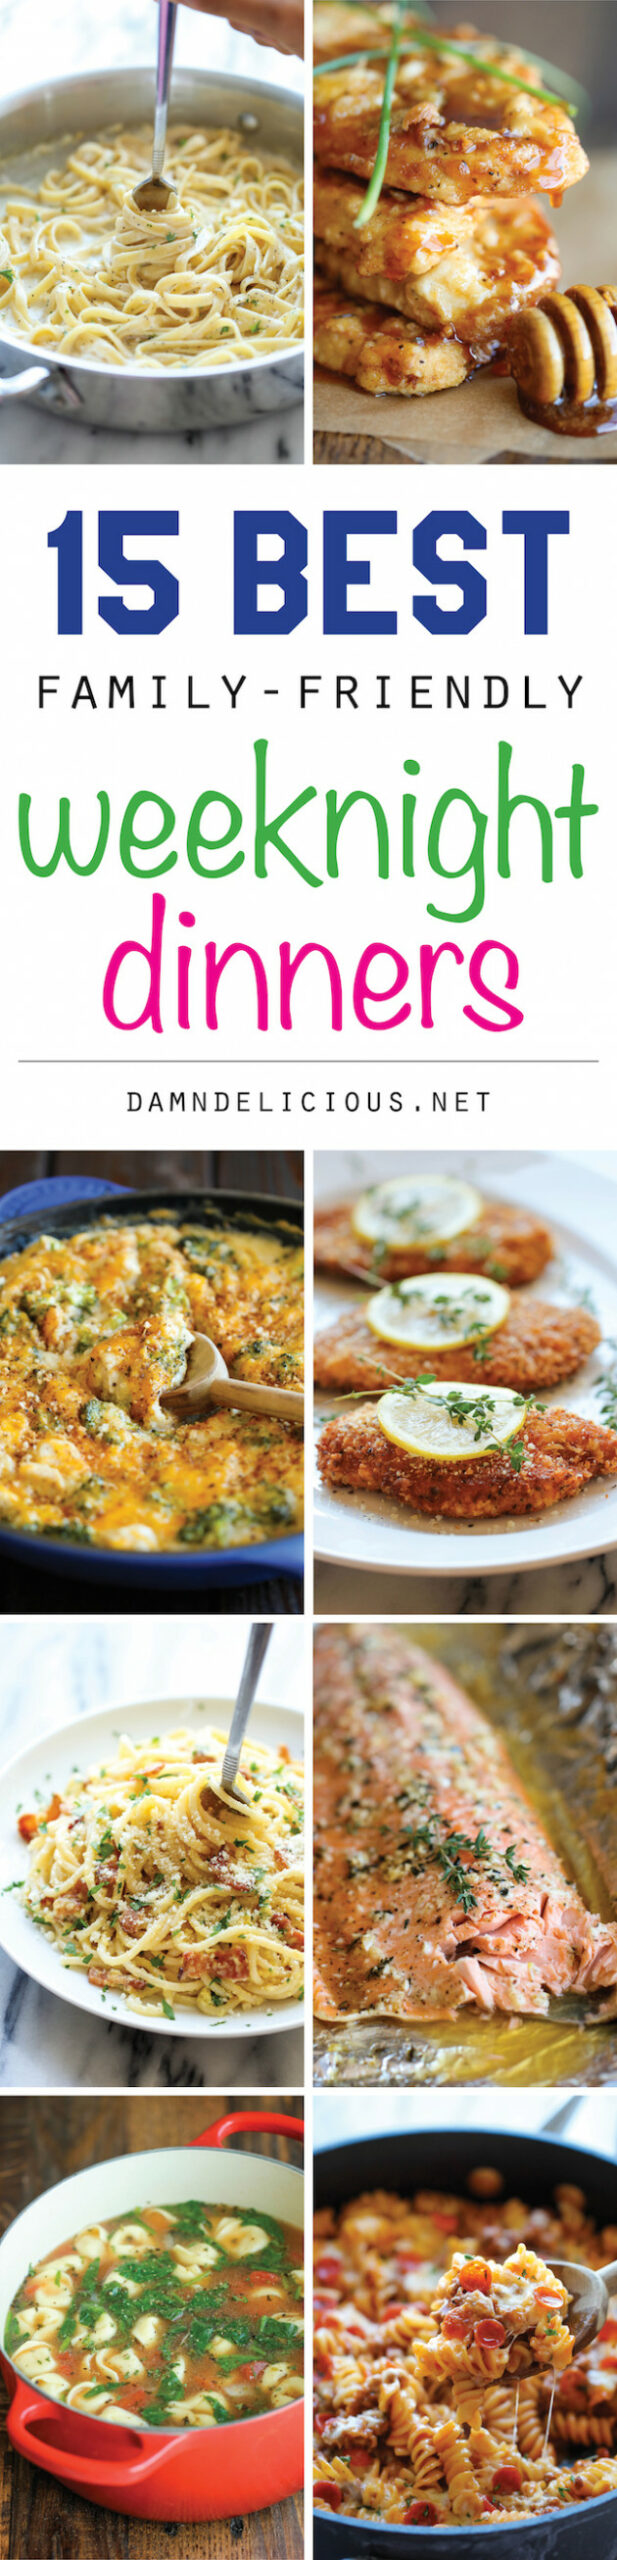 13 Best Family-Friendly Weeknight Dinners - Damn Delicious - kid friendly recipes dinner